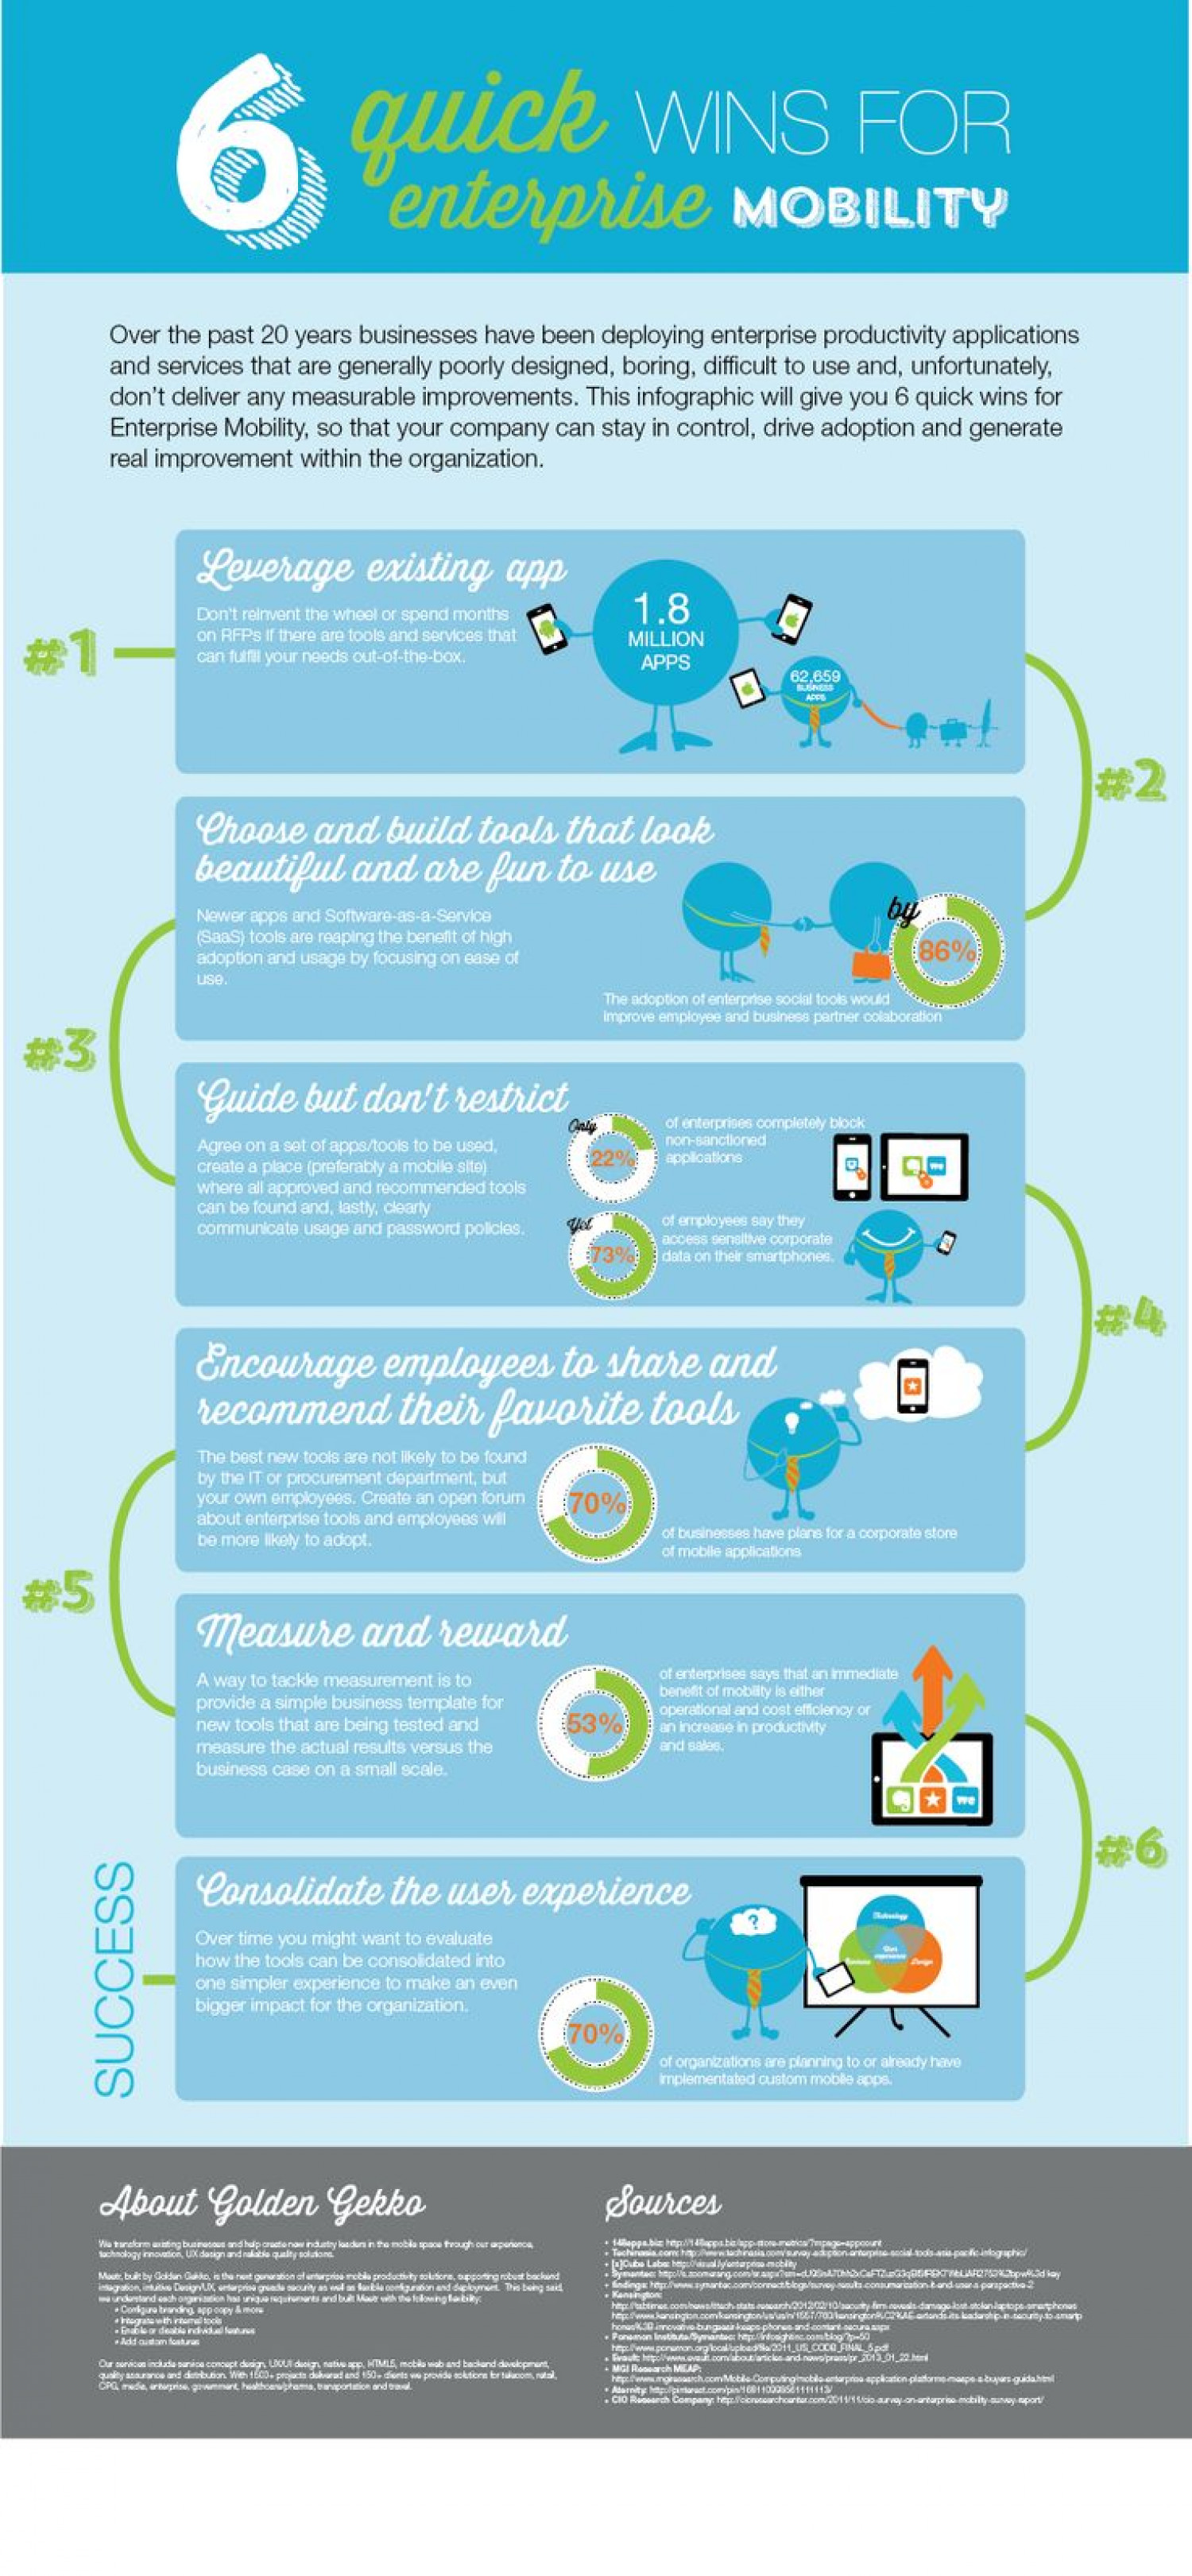 6 quick wiins for enterprise mobility Infographic